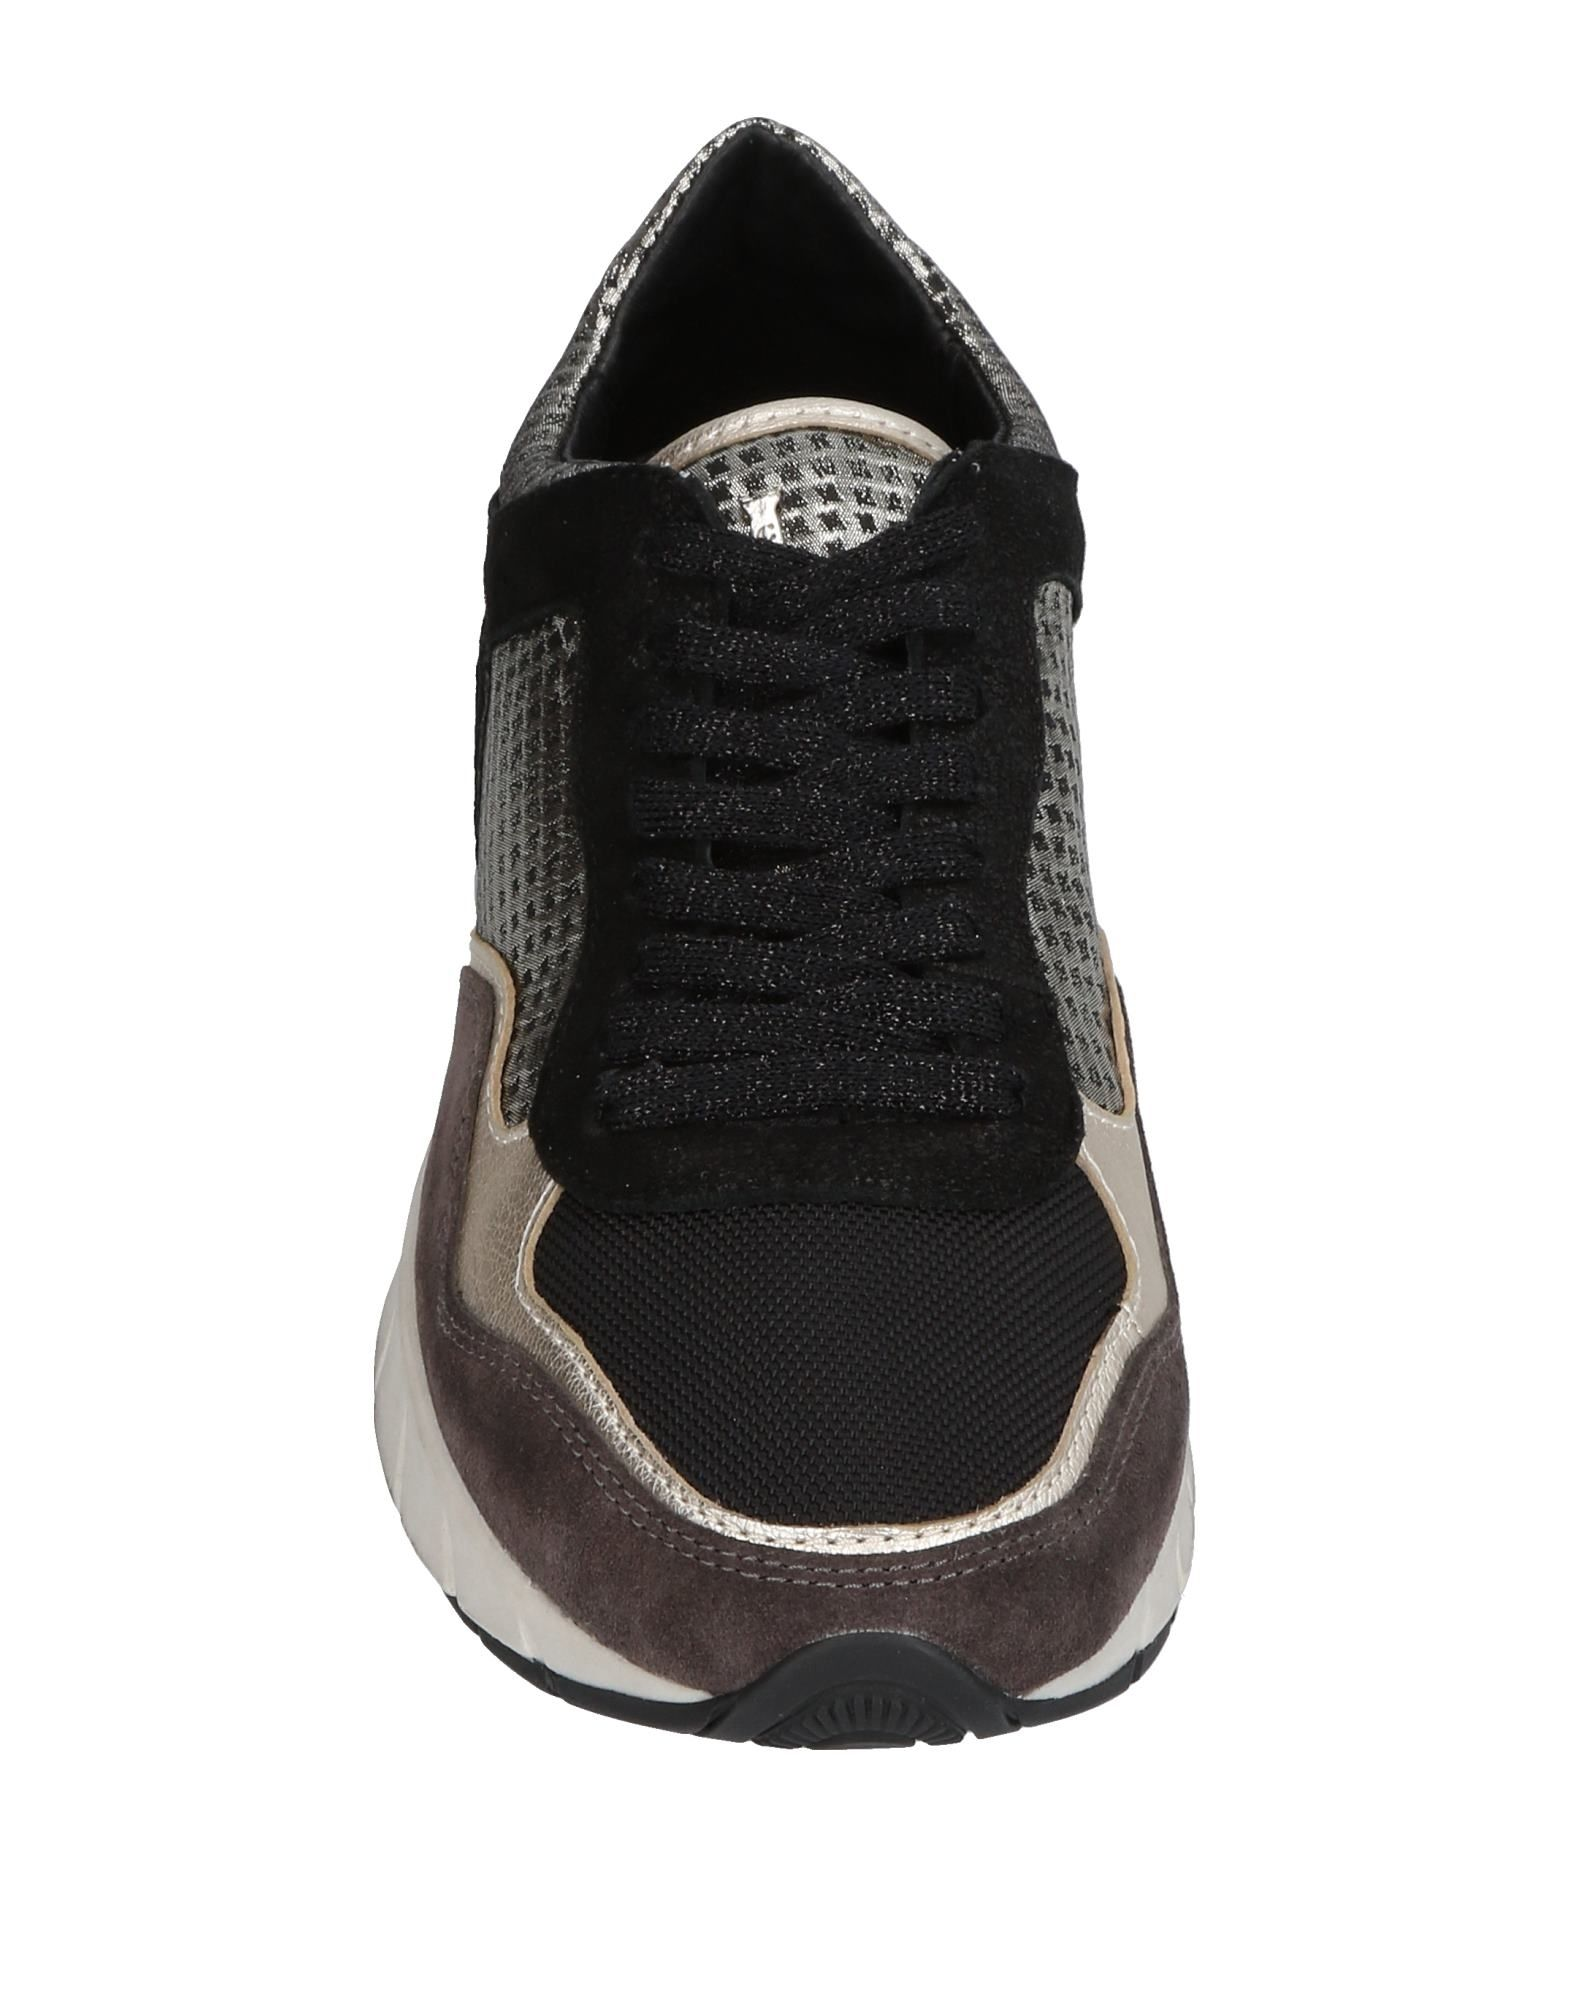 Crime London Sneakers - Women Crime London Sneakers online on on on  United Kingdom - 11457310VH 8db40c